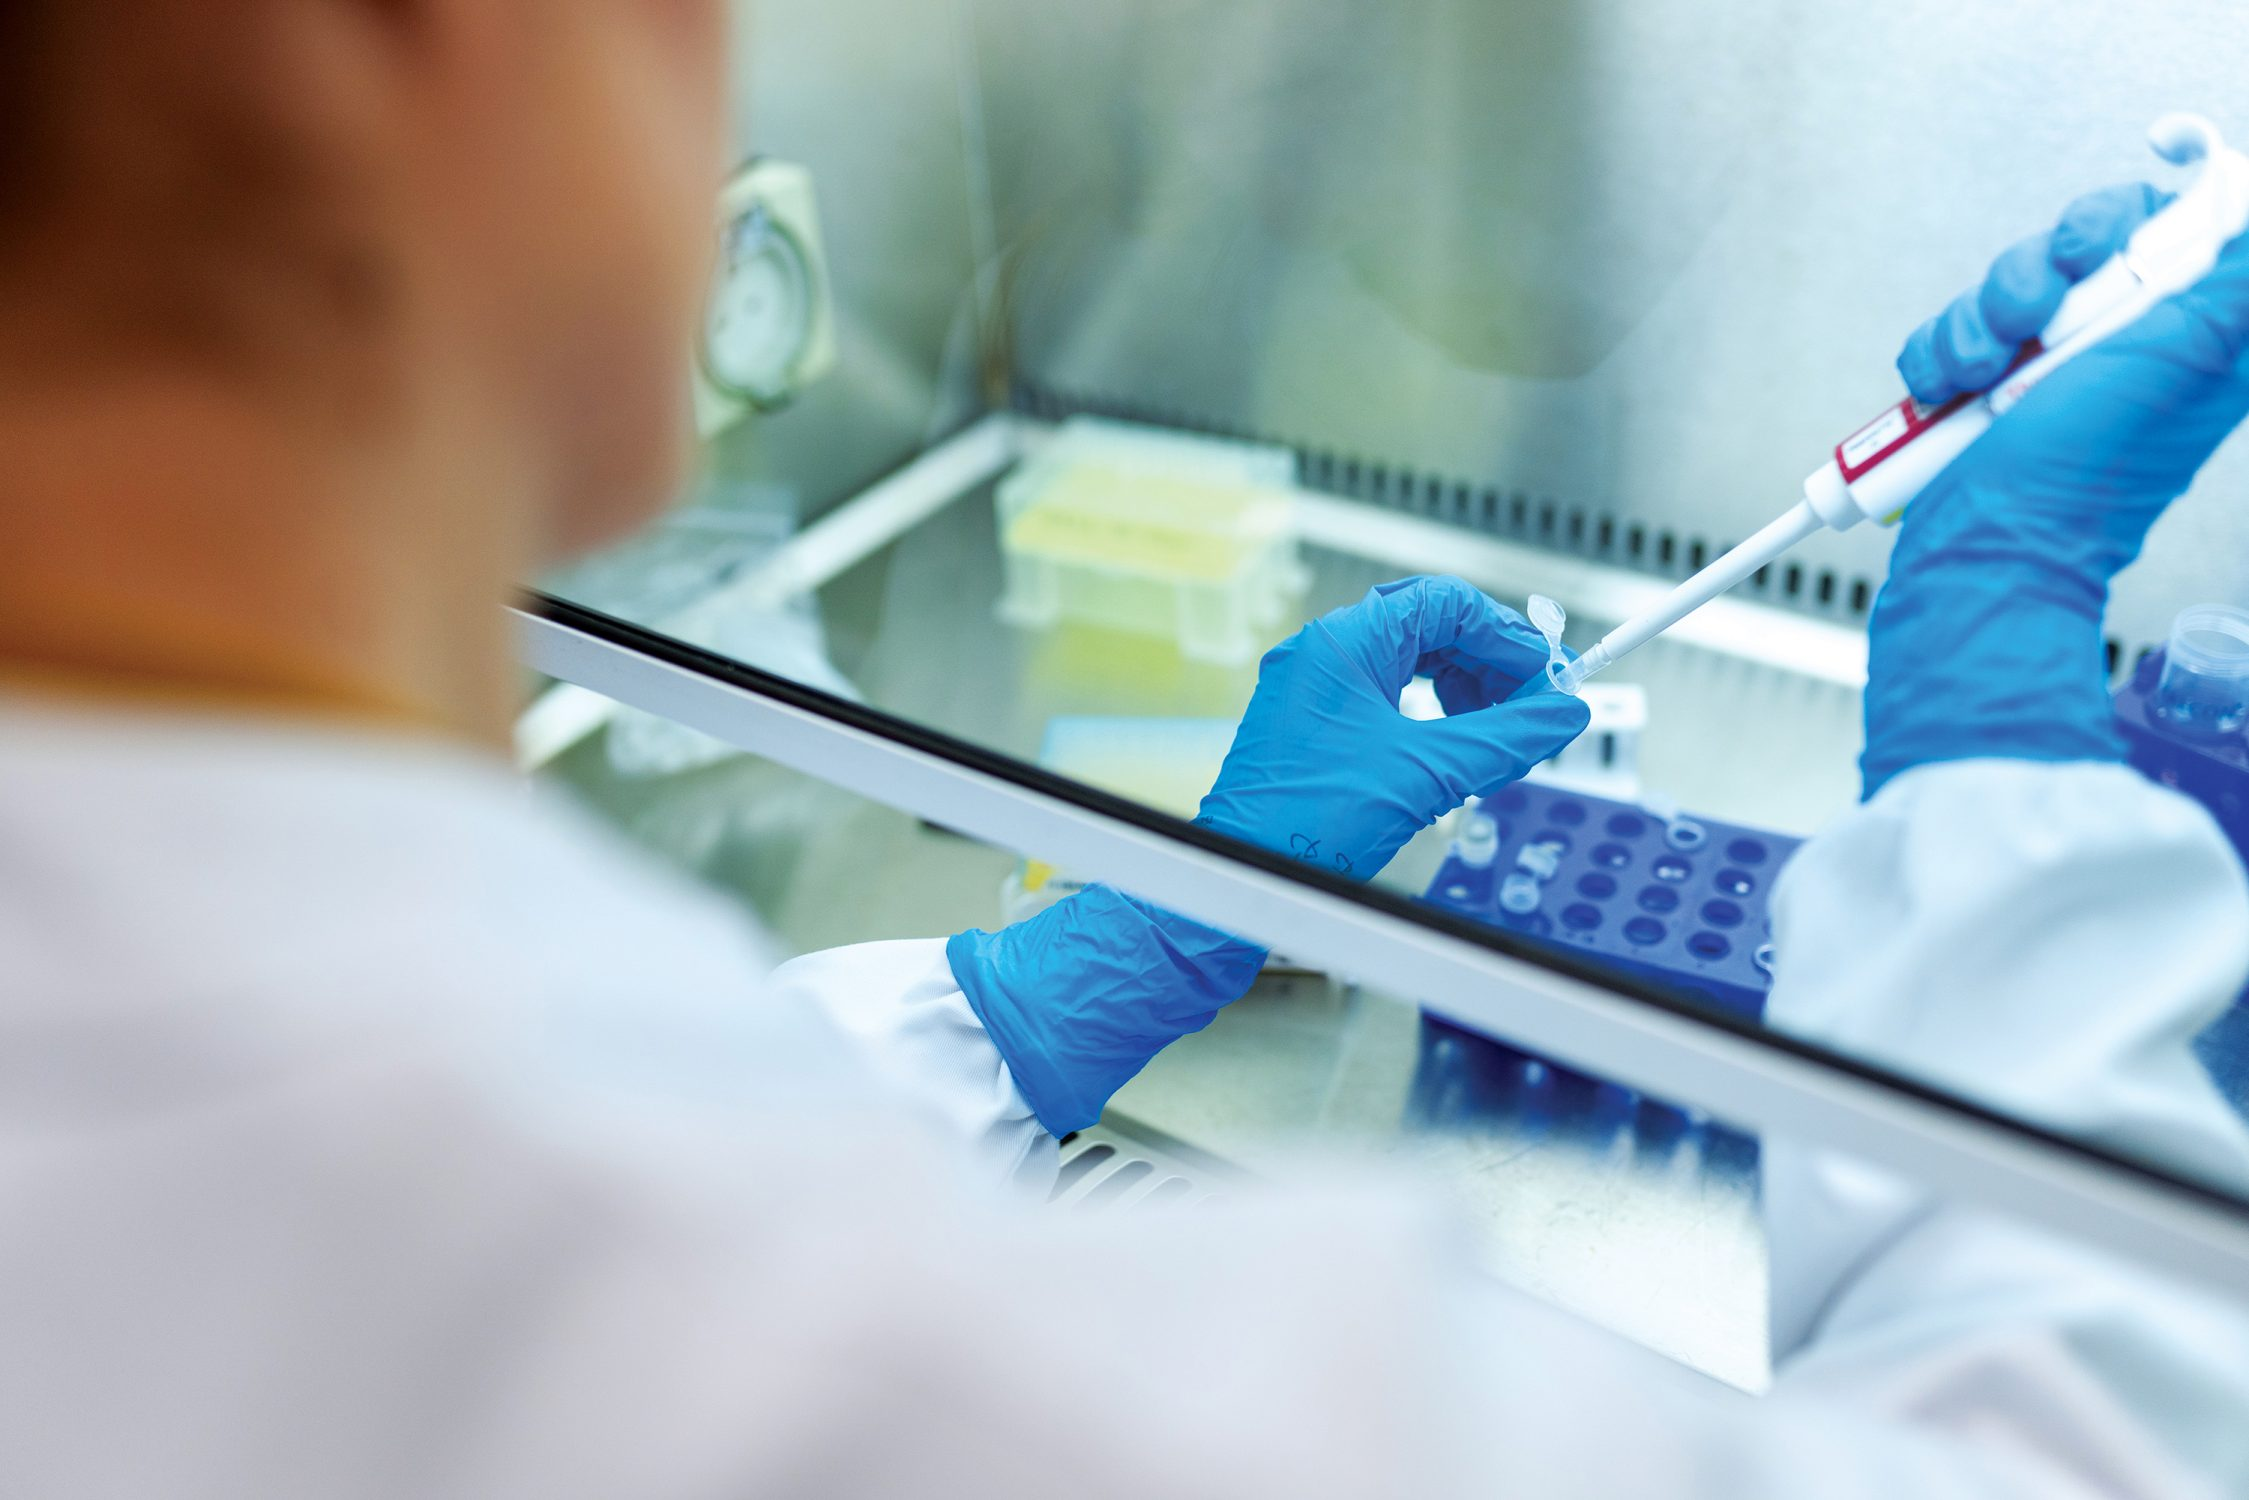 latest trends in medical research innovation for stem cell therapy viosapp